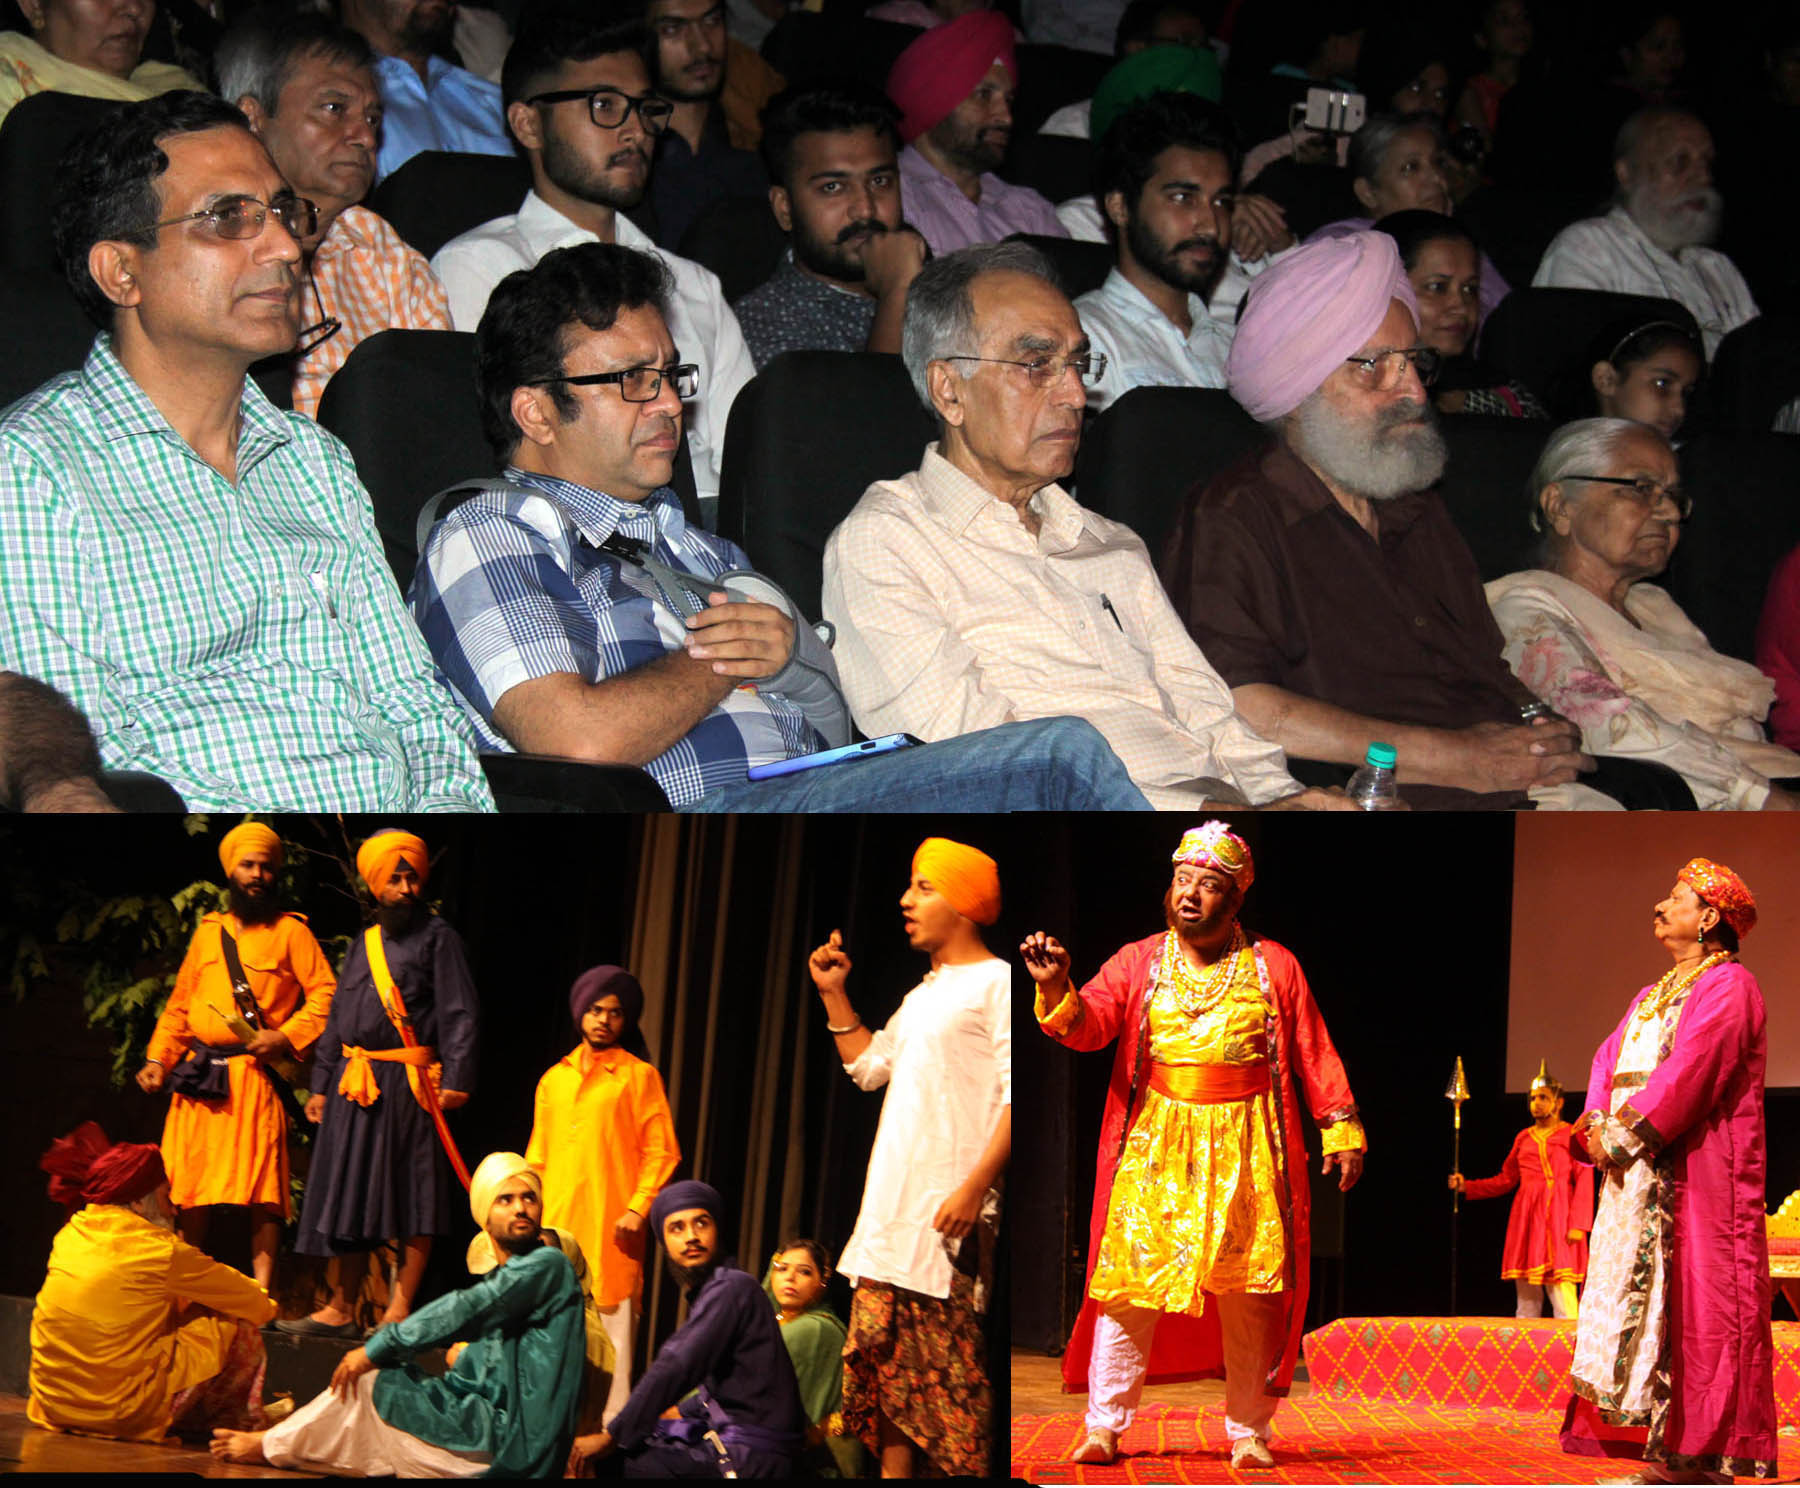 UT Home Secretary, Shri Anurag Agarwal alongwith others witnessing the �Light Sight & Sound Programme� on the life of Baba Banda Singh Bahadur  at Tagore Theatre, Sector-18, Chandigarh on Thursday, July 28, 2016.